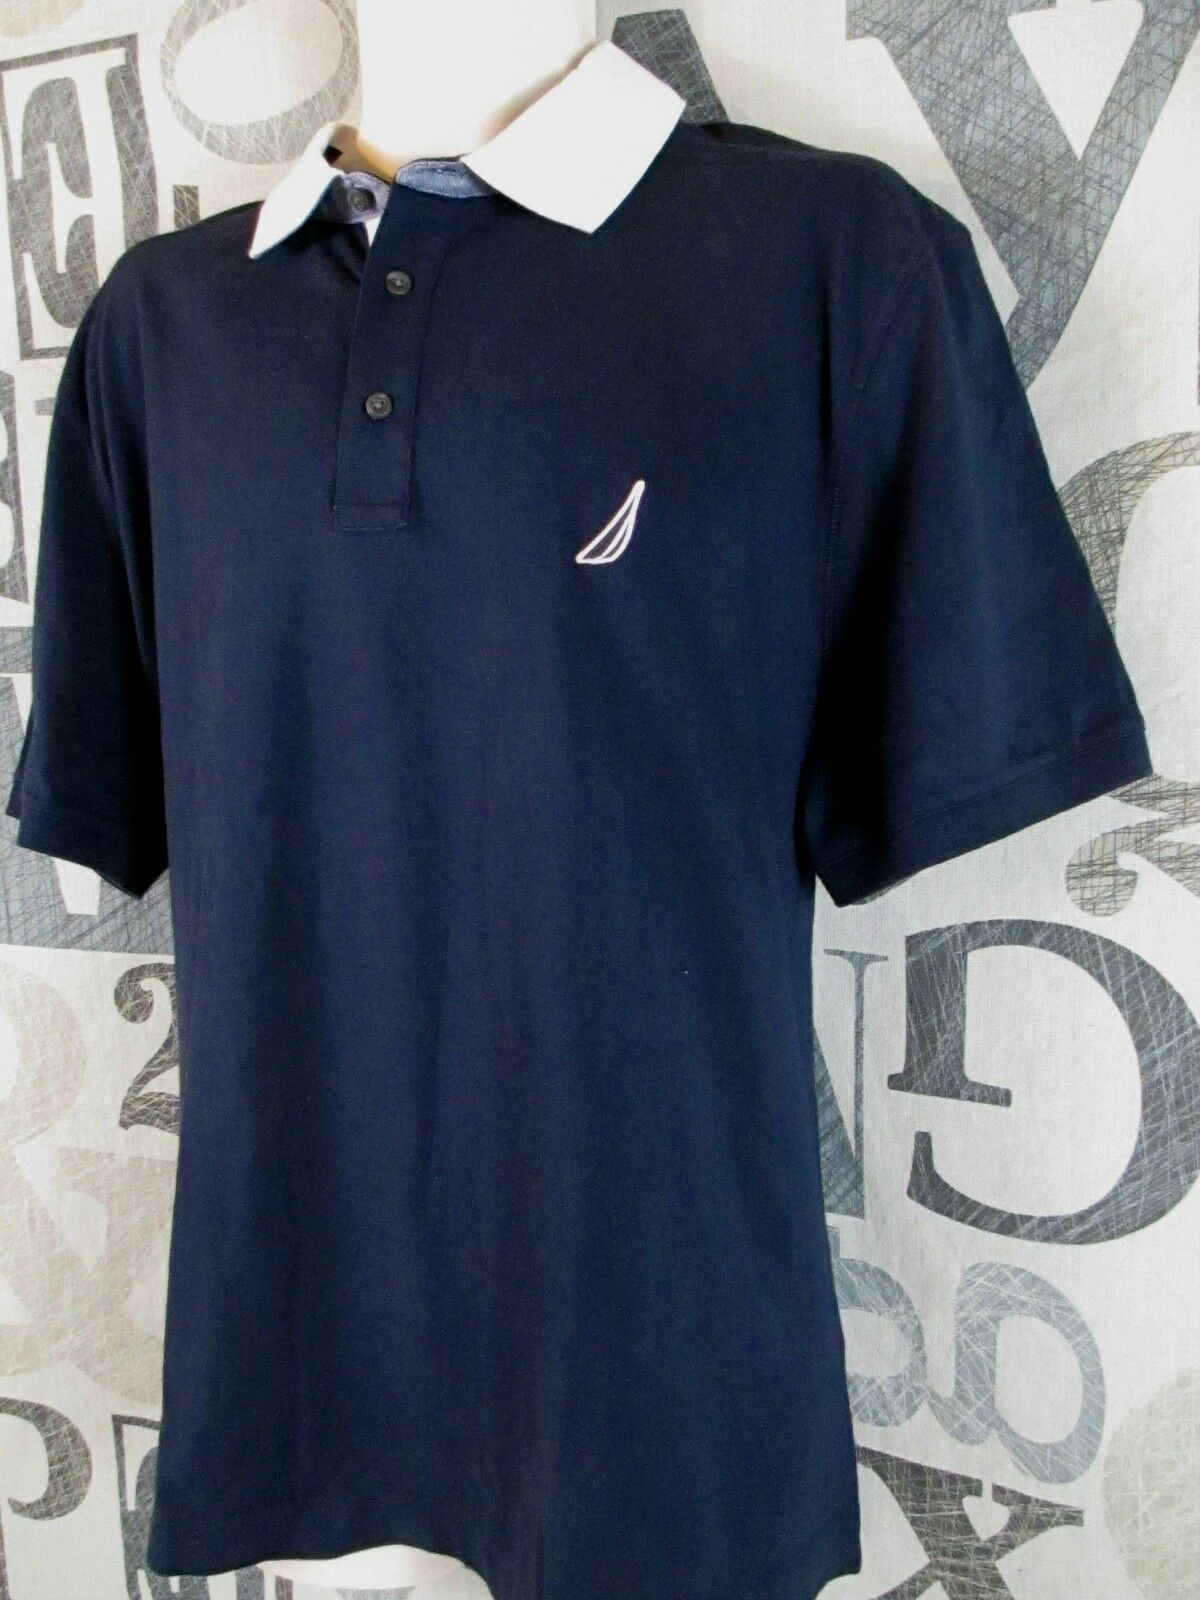 With Tag Nautica Polo Shirt Men Extra Large Xl Navy Blue Cotton